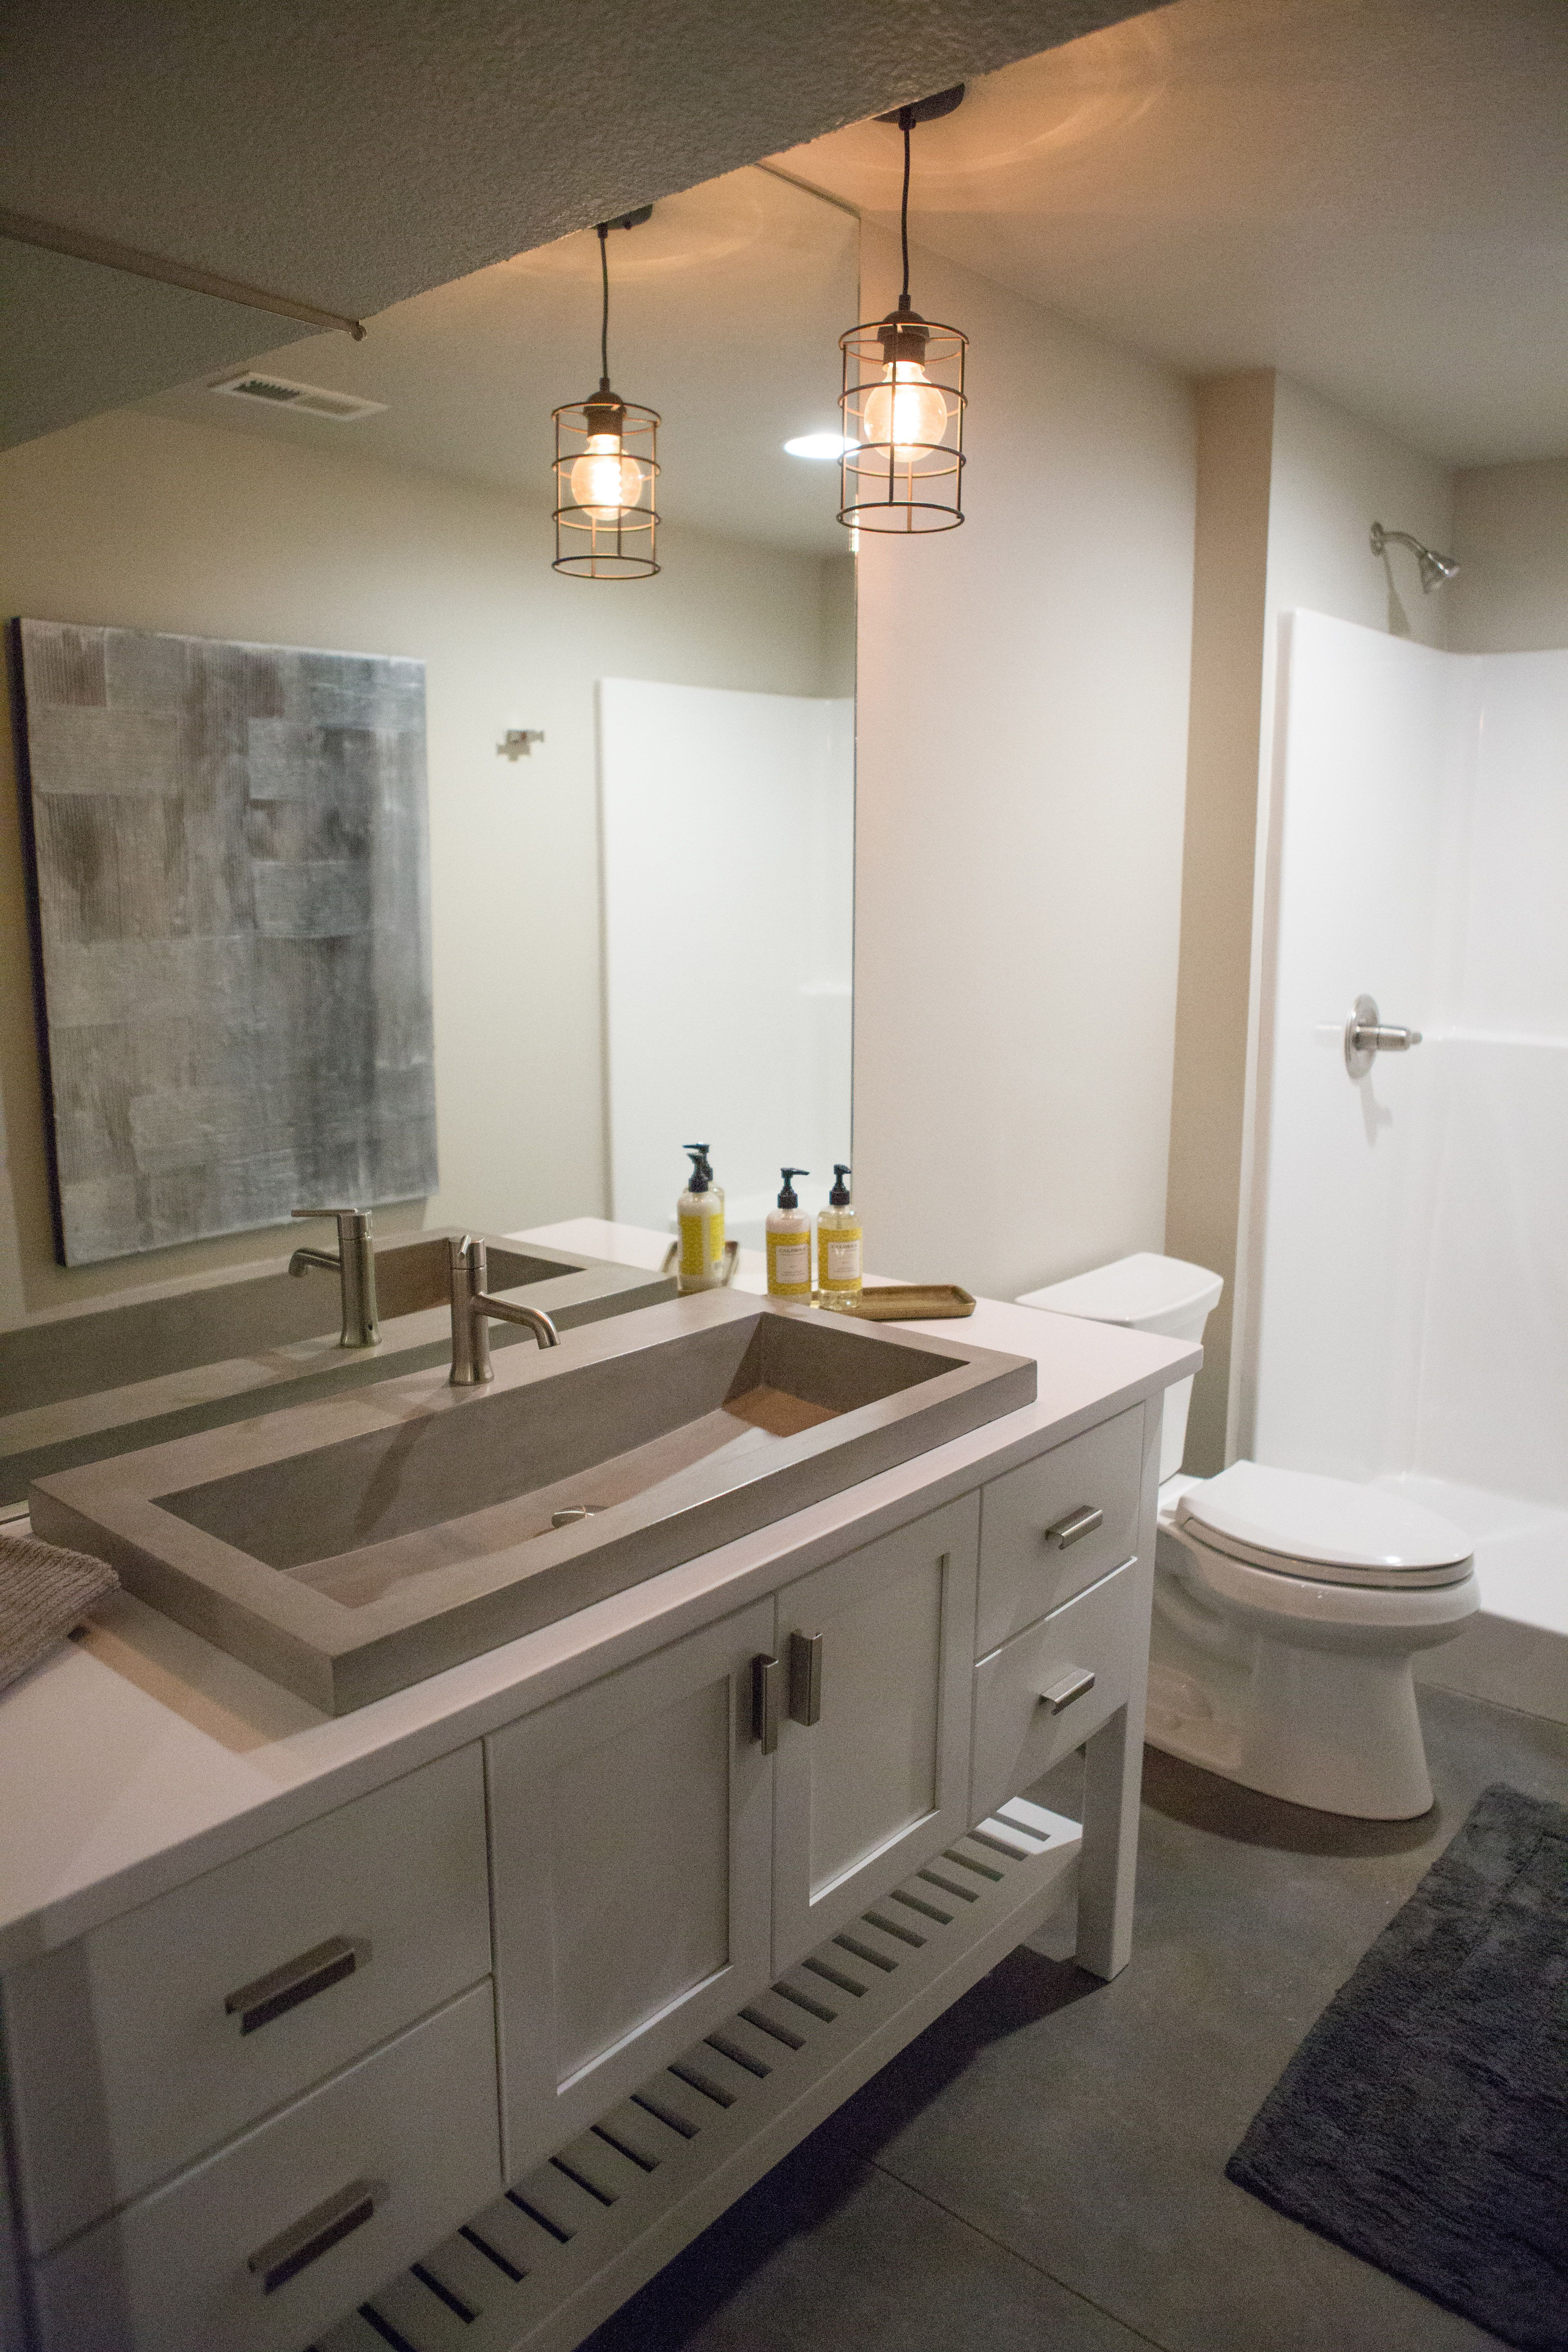 Awesome Basement Bathroom With Concrete Sink   Our Latest Custom Home (4/3/17